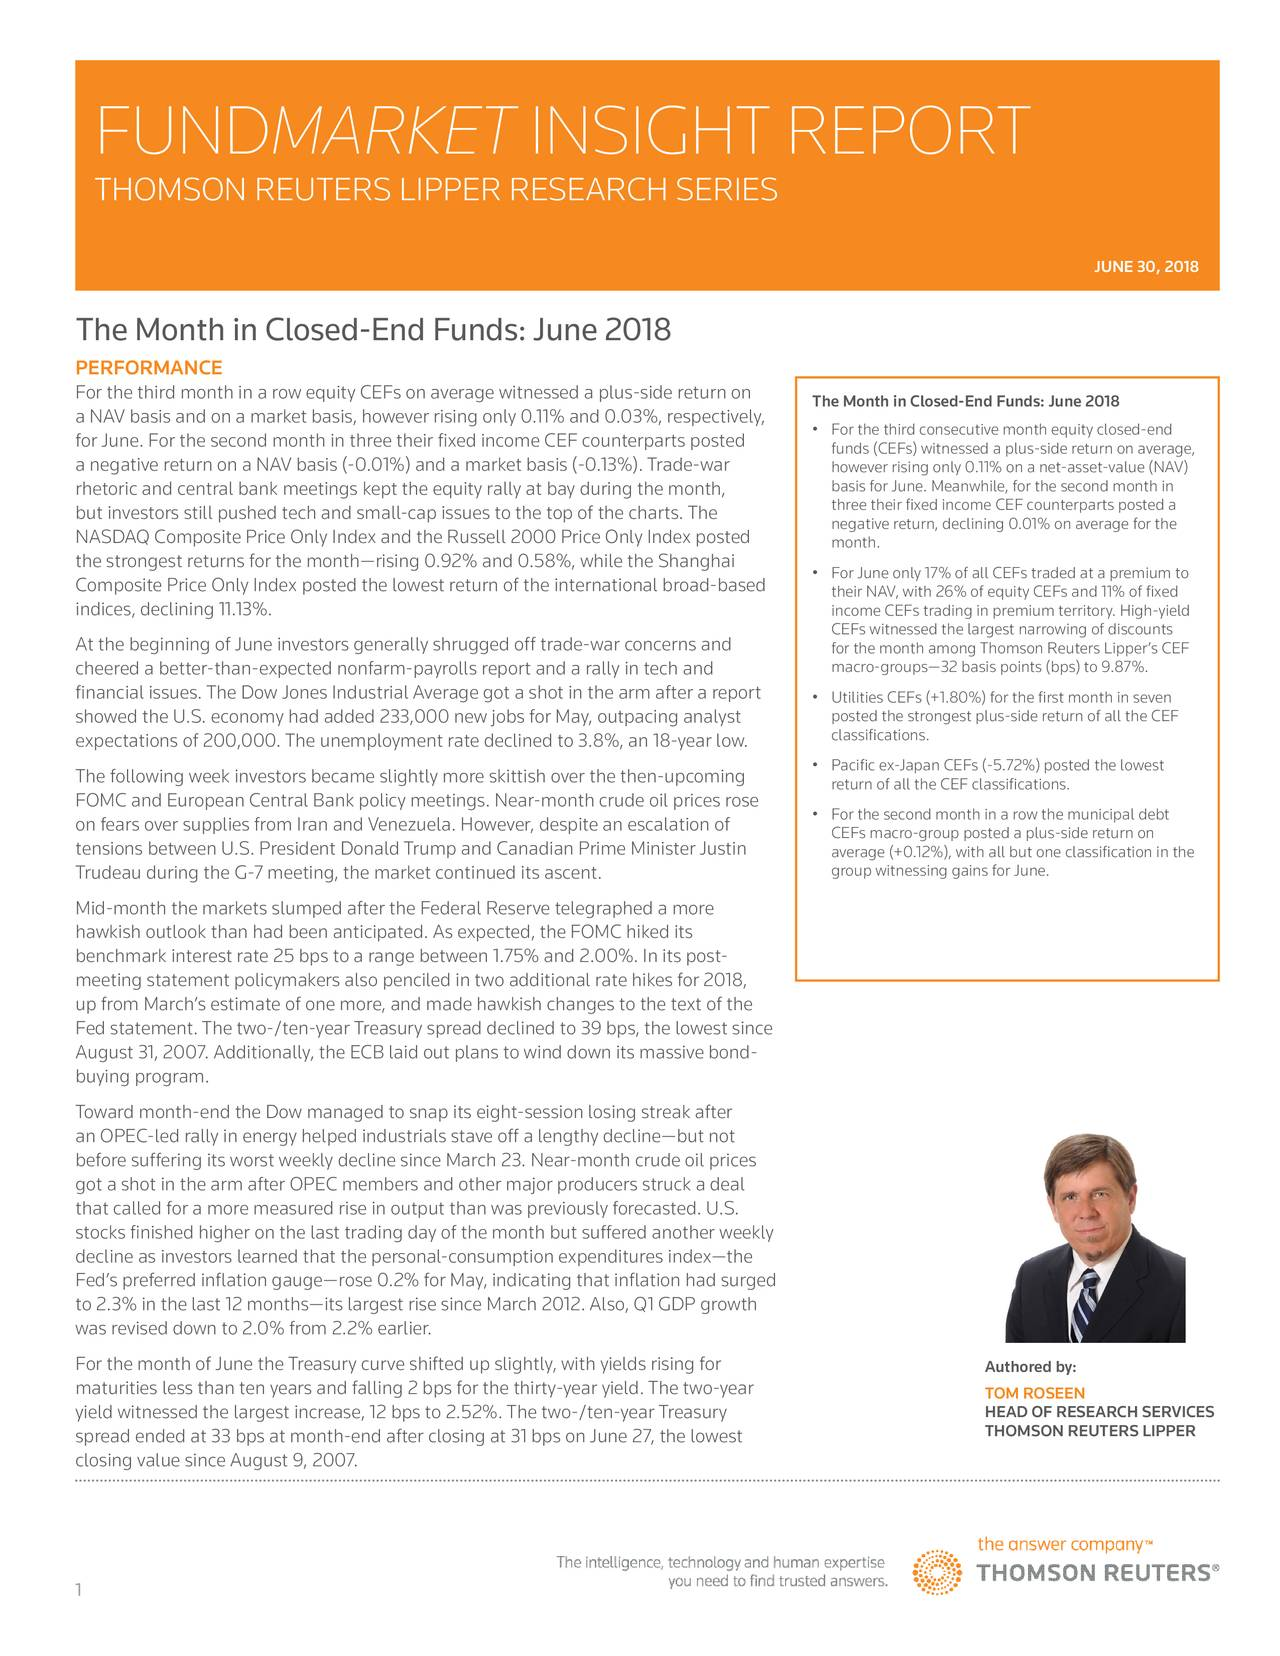 THOMSON REUTERS LIPPER RESEARCH SERIES JUNE 30, 2018 The Month in Closed-End Funds: June 2018 PERFORMANCE For the third month in a row equity CEFs on average witnessed a plus-side return on The Month in Closed-End Funds: June 2018 a NAV basis and on a market basis, however rising only 0.11% and 0.03%, respectively, for June. For the second month in three their fixed income CEF counterparts posted • For the third consecutive month equity closed-end a negative return on a NAV basis (-0.01%) and a market basis (-0.13%). Trade-war funds (CEFs) witnessed a plus-side return on average, however rising only 0.11% on a net-asset-value (NAV) rhetoric and central bank meetings kept the equity rally at bay during the month, three their fixed income CEF counterparts posted a but investors still pushed tech and small-cap issues to the top of the charts. The negative return, declining 0.01% on average for the NASDAQ Composite Price Only Index and the Russell 2000 Price Only Index posted month. the strongest returns for the month—rising 0.92% and 0.58%, while the Shanghai • For June only 17% of all CEFs traded at a premium to Composite Price Only Index posted the lowest return of the international broad-based their NAV, with 26% of equity CEFs and 11% of fixed indices, declining 11.13%. income CEFs trading in premium territory. High-yield CEFs witnessed the largest narrowing of discounts At the beginning of June investors generally shrugged off trade-war concerns and for the month among Thomson Reuters Lipper's CEF cheered a better-than-expected nonfarm-payrolls report and a rally in tech and macro-groups—32 basis points (bps) to 9.87%. financial issues. The Dow Jones Industrial Average got a shot in the arm after a report • Utilities CEFs (+1.80%) for the first month in seven posted the strongest plus-side return of all the CEF showed the U.S. economy had added 233,000 new jobs for May, outpacing analyst classifications. expectations of 200,000. The unemployment rate declined to 3